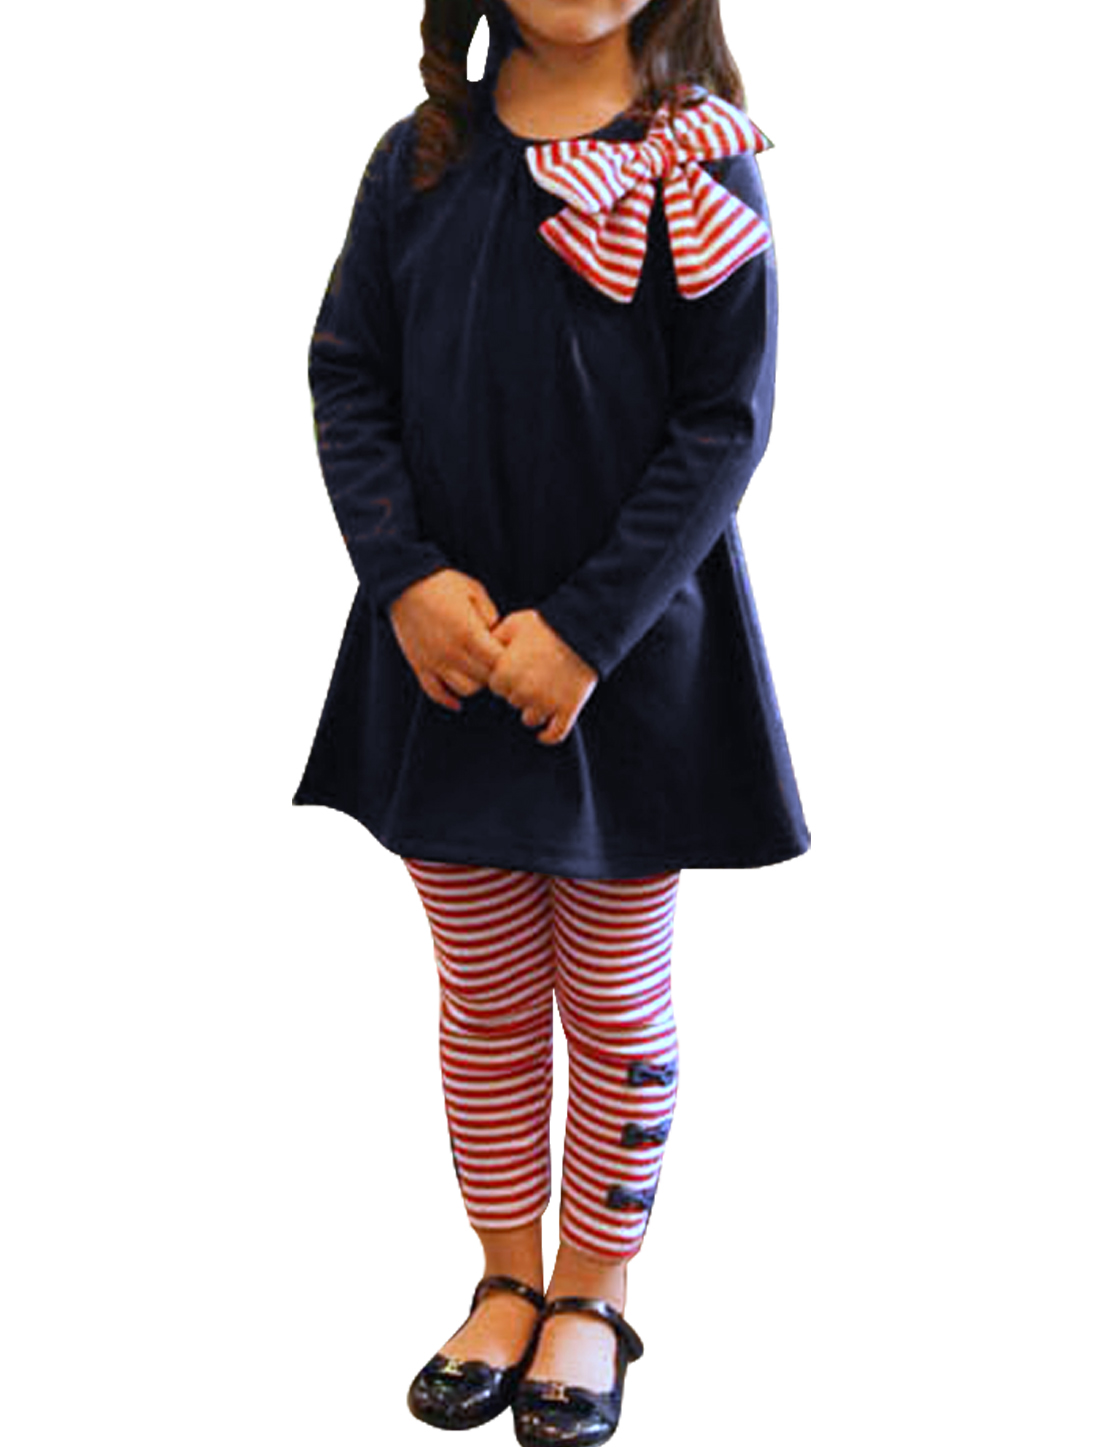 Girls Round Neck Shirt & Stripes Fall Wearing Pants Navy Blue Red 4T